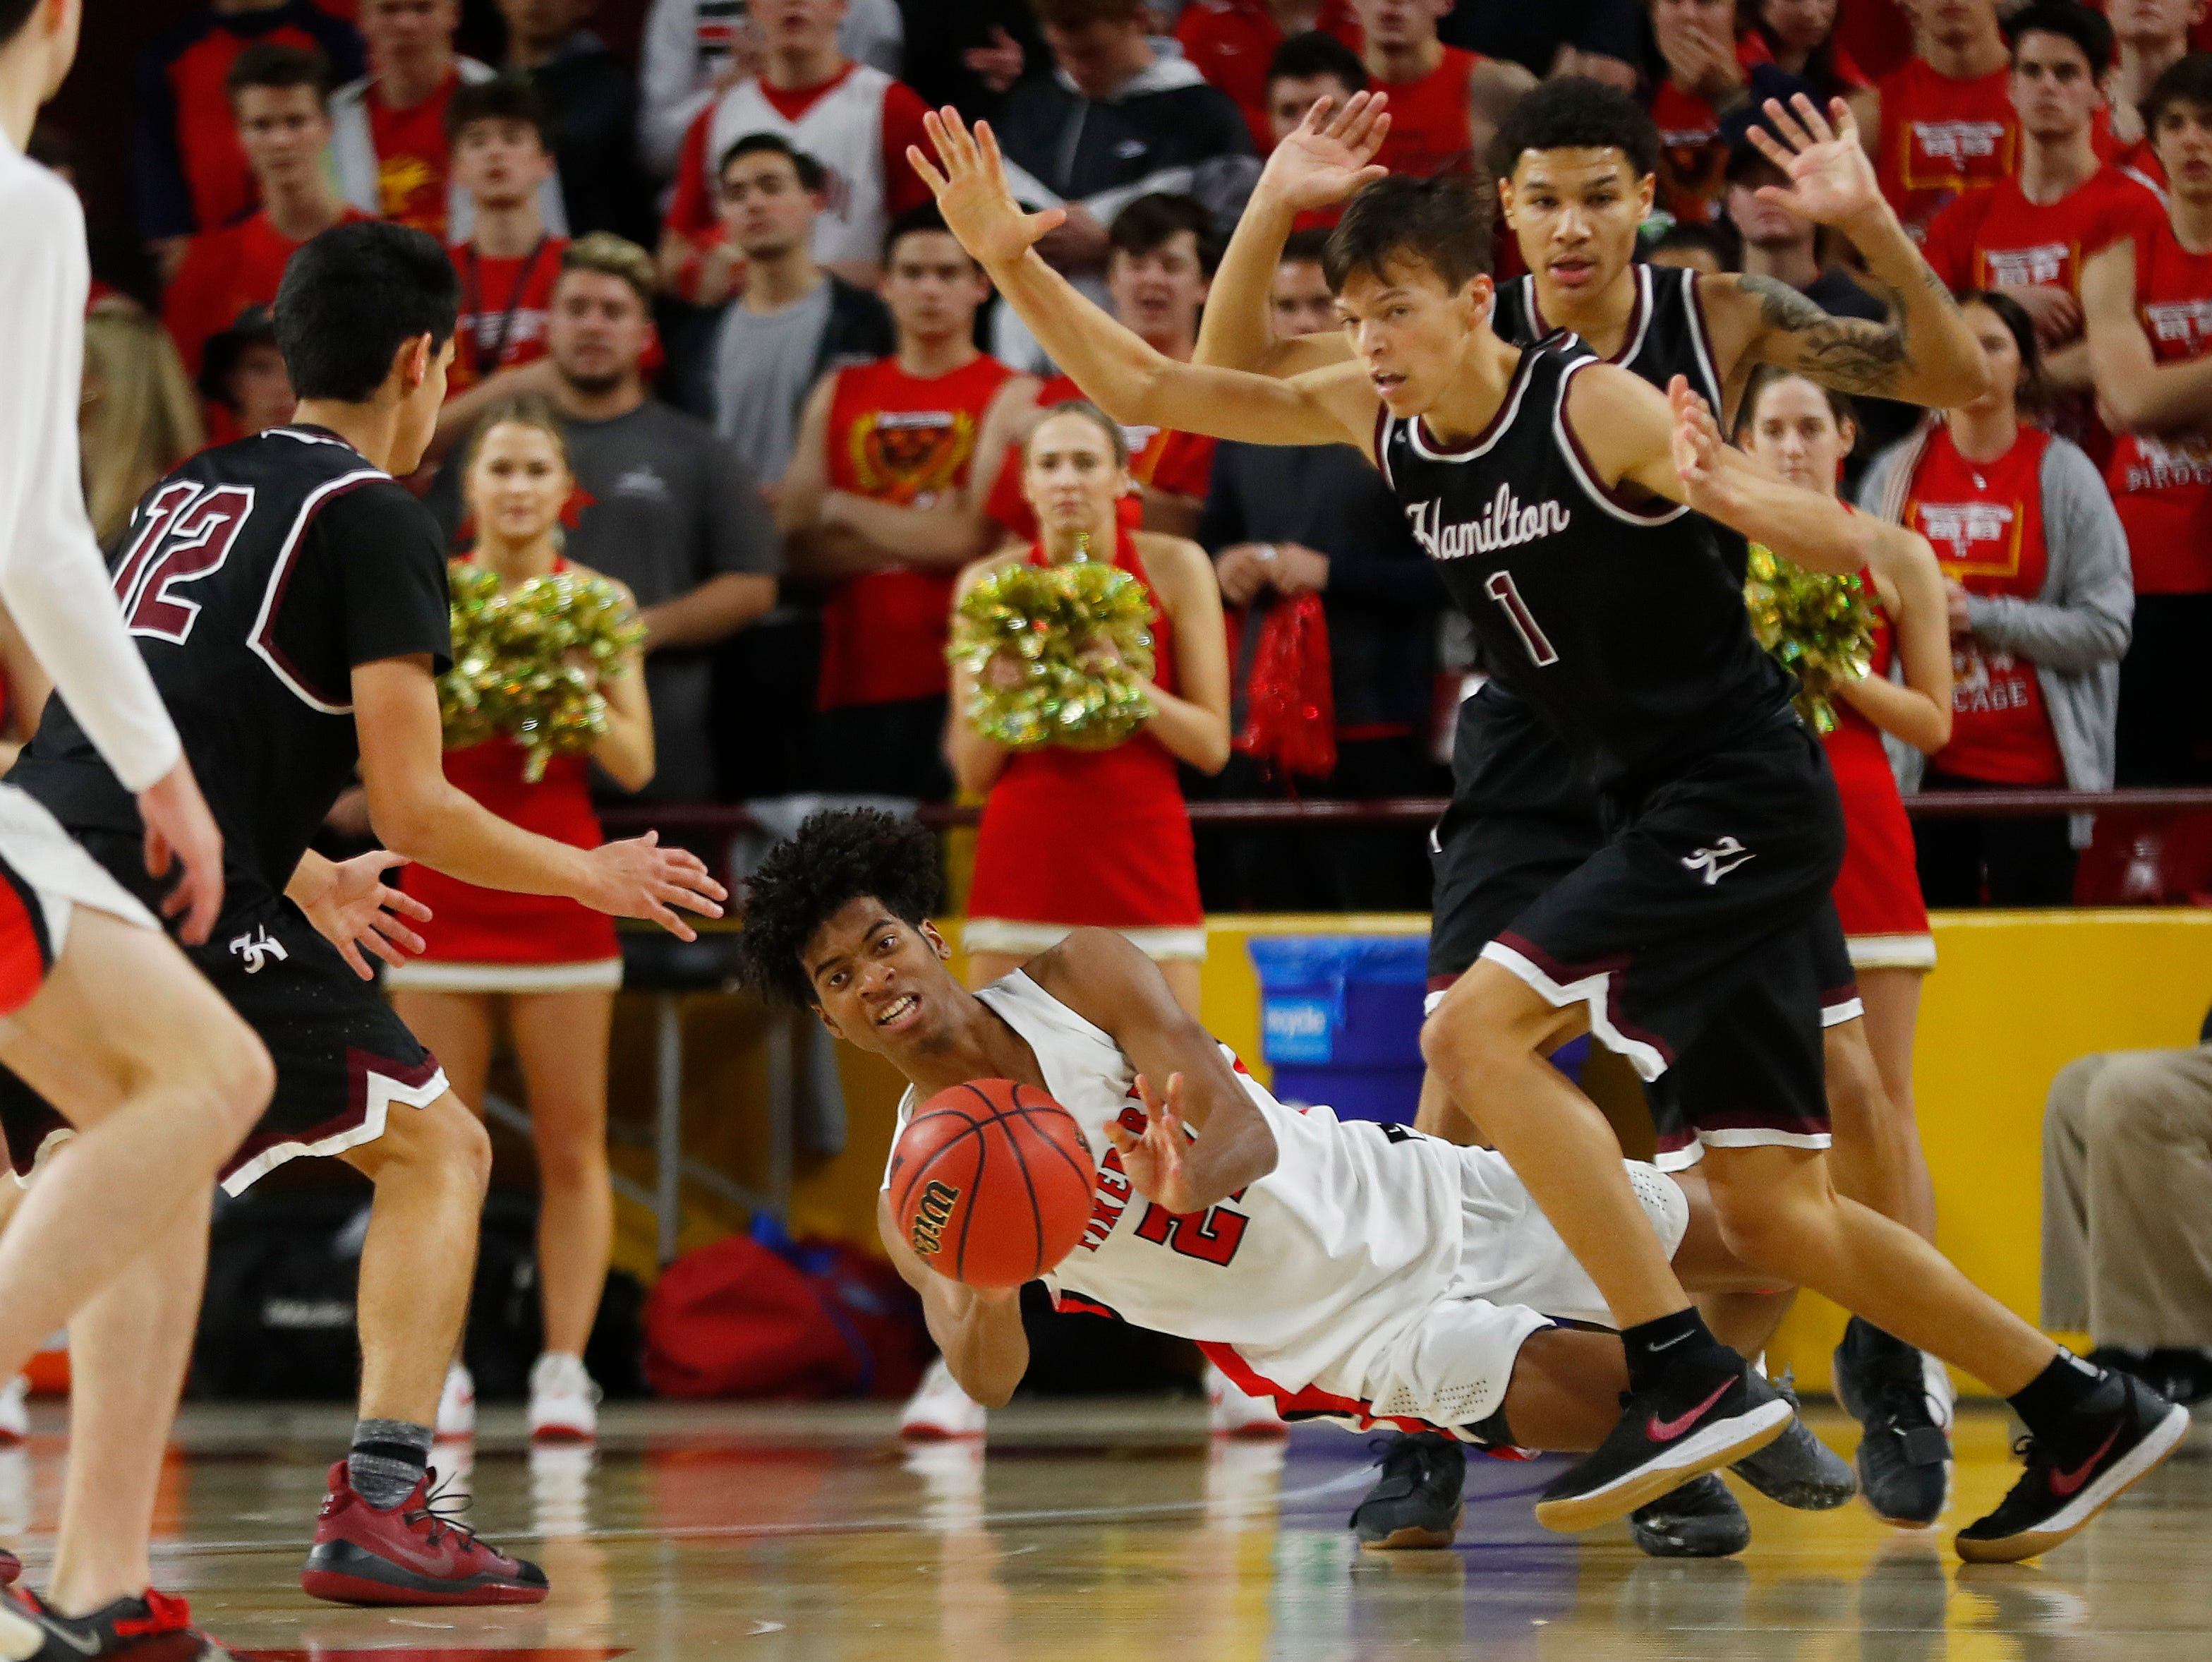 Chaparral's Jordan Josephs (24) passes as he fouls from a foul on Hamilton's Jamar Brown (1) during second half of the 6A boys basketball semifinal game at Wells Fargo Arena in Tempe, Ariz. on February 21, 2019.